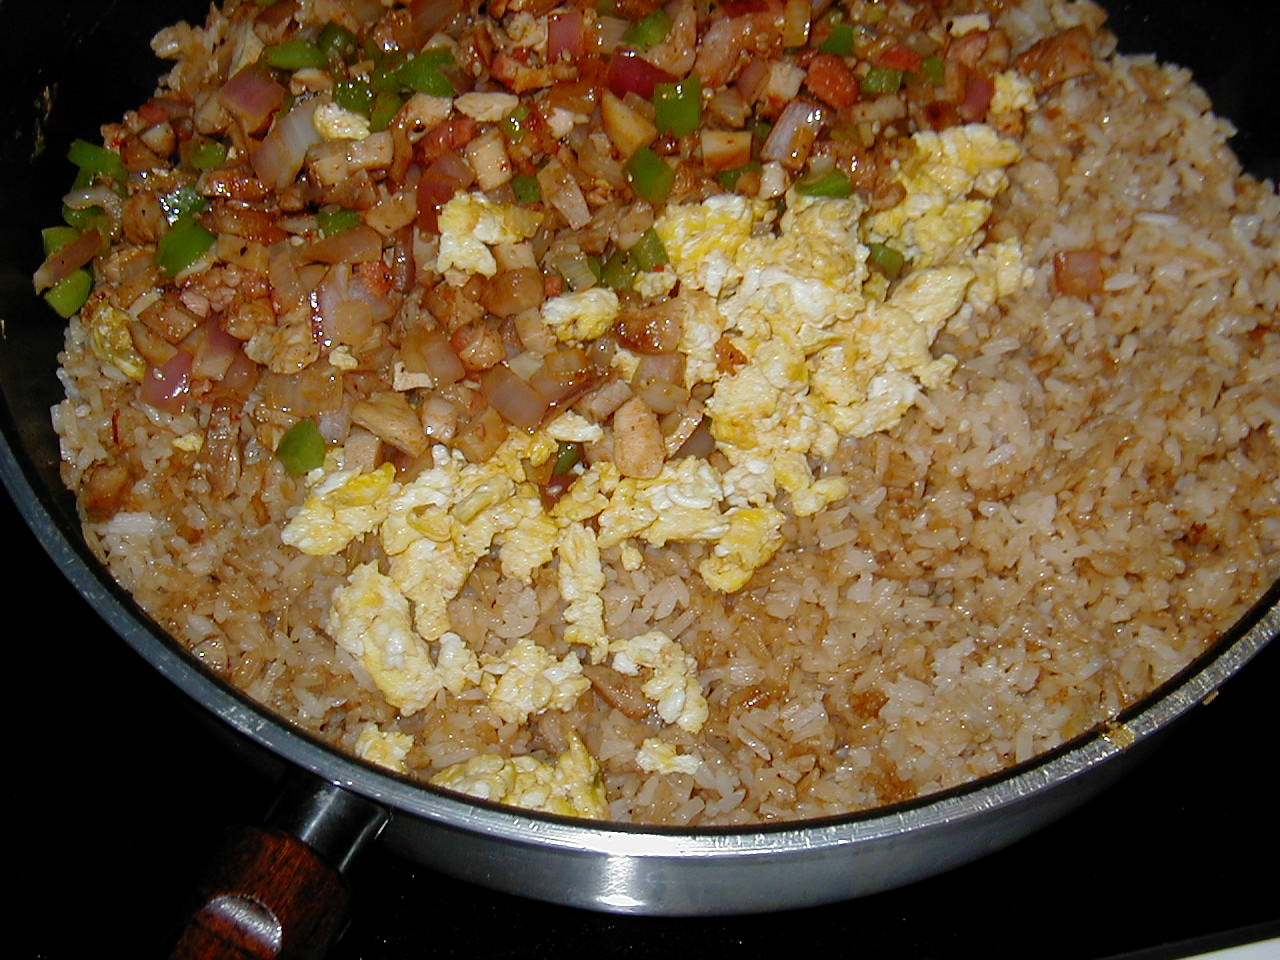 Micks oi shi fried rice recipe clickokinawa keep moving the ricemeat combination around in the wok pan so that it doesnt burn i like to leave it long enough to just barely scorch the rice enough ccuart Gallery